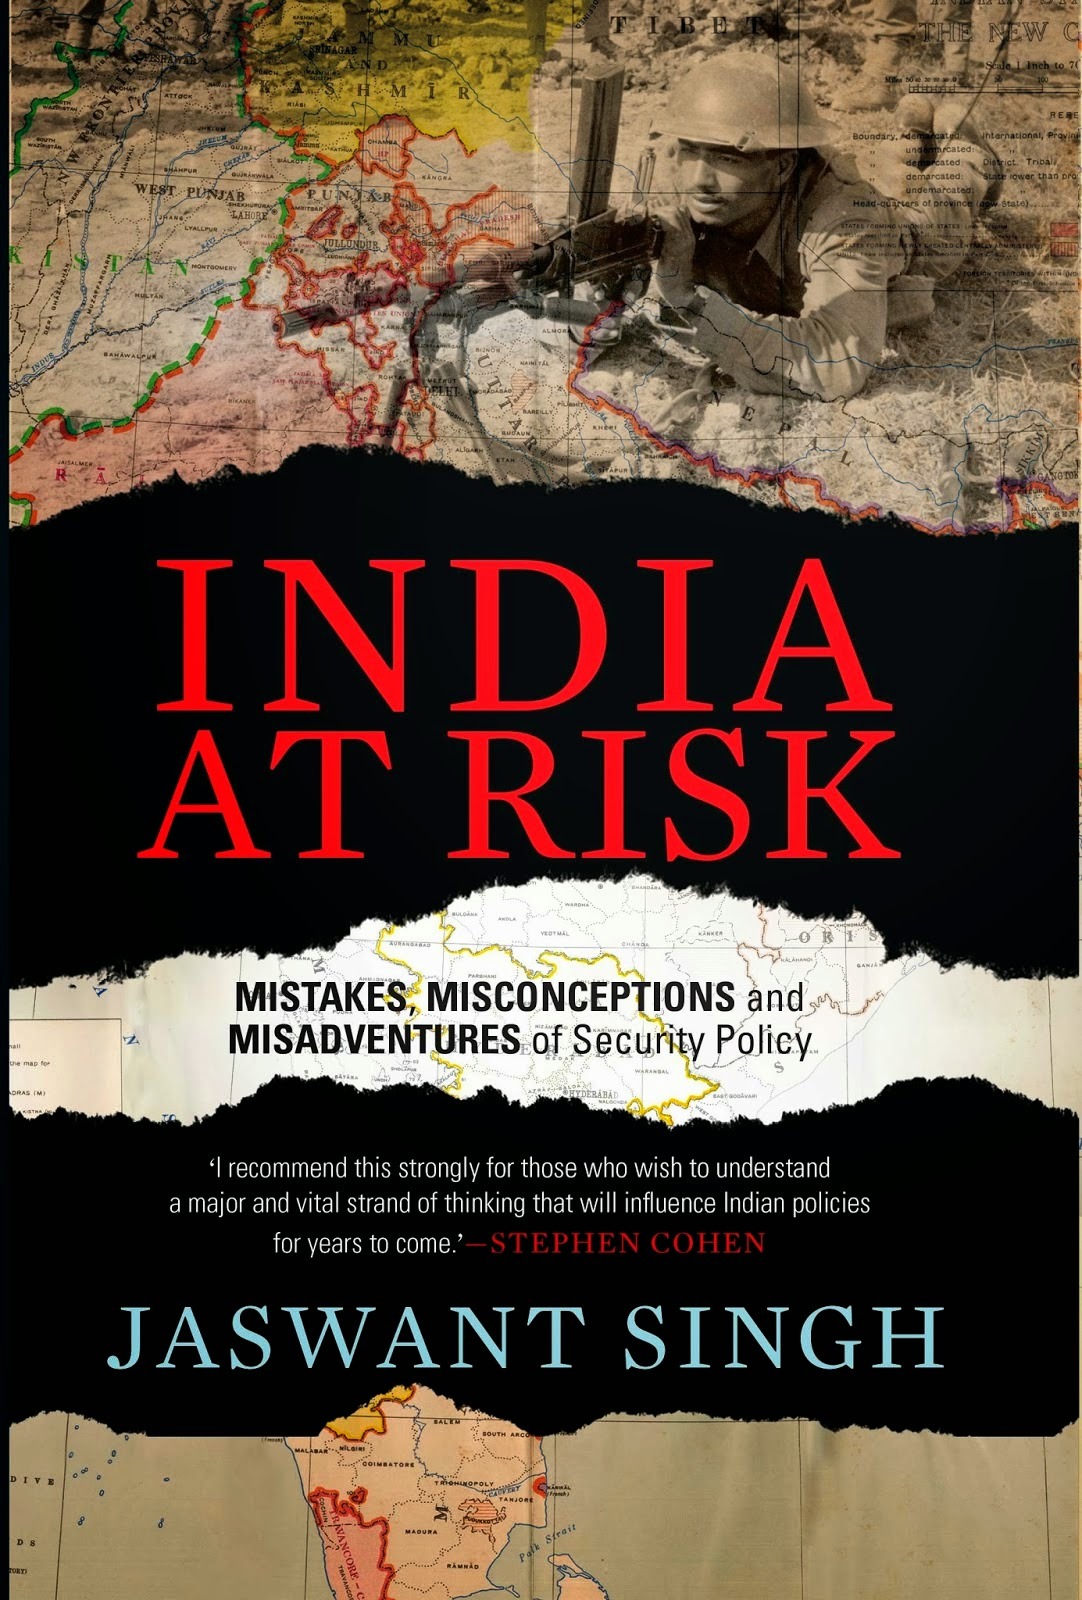 Full text of jaishankar telling china not to fear indias rise business standard - Mr Jaswant Singh S Quote Above Captures The Essence Of The Former Indian Foreign Minister S 2013 Book Titled India At Risk Mistakes Misconceptions And